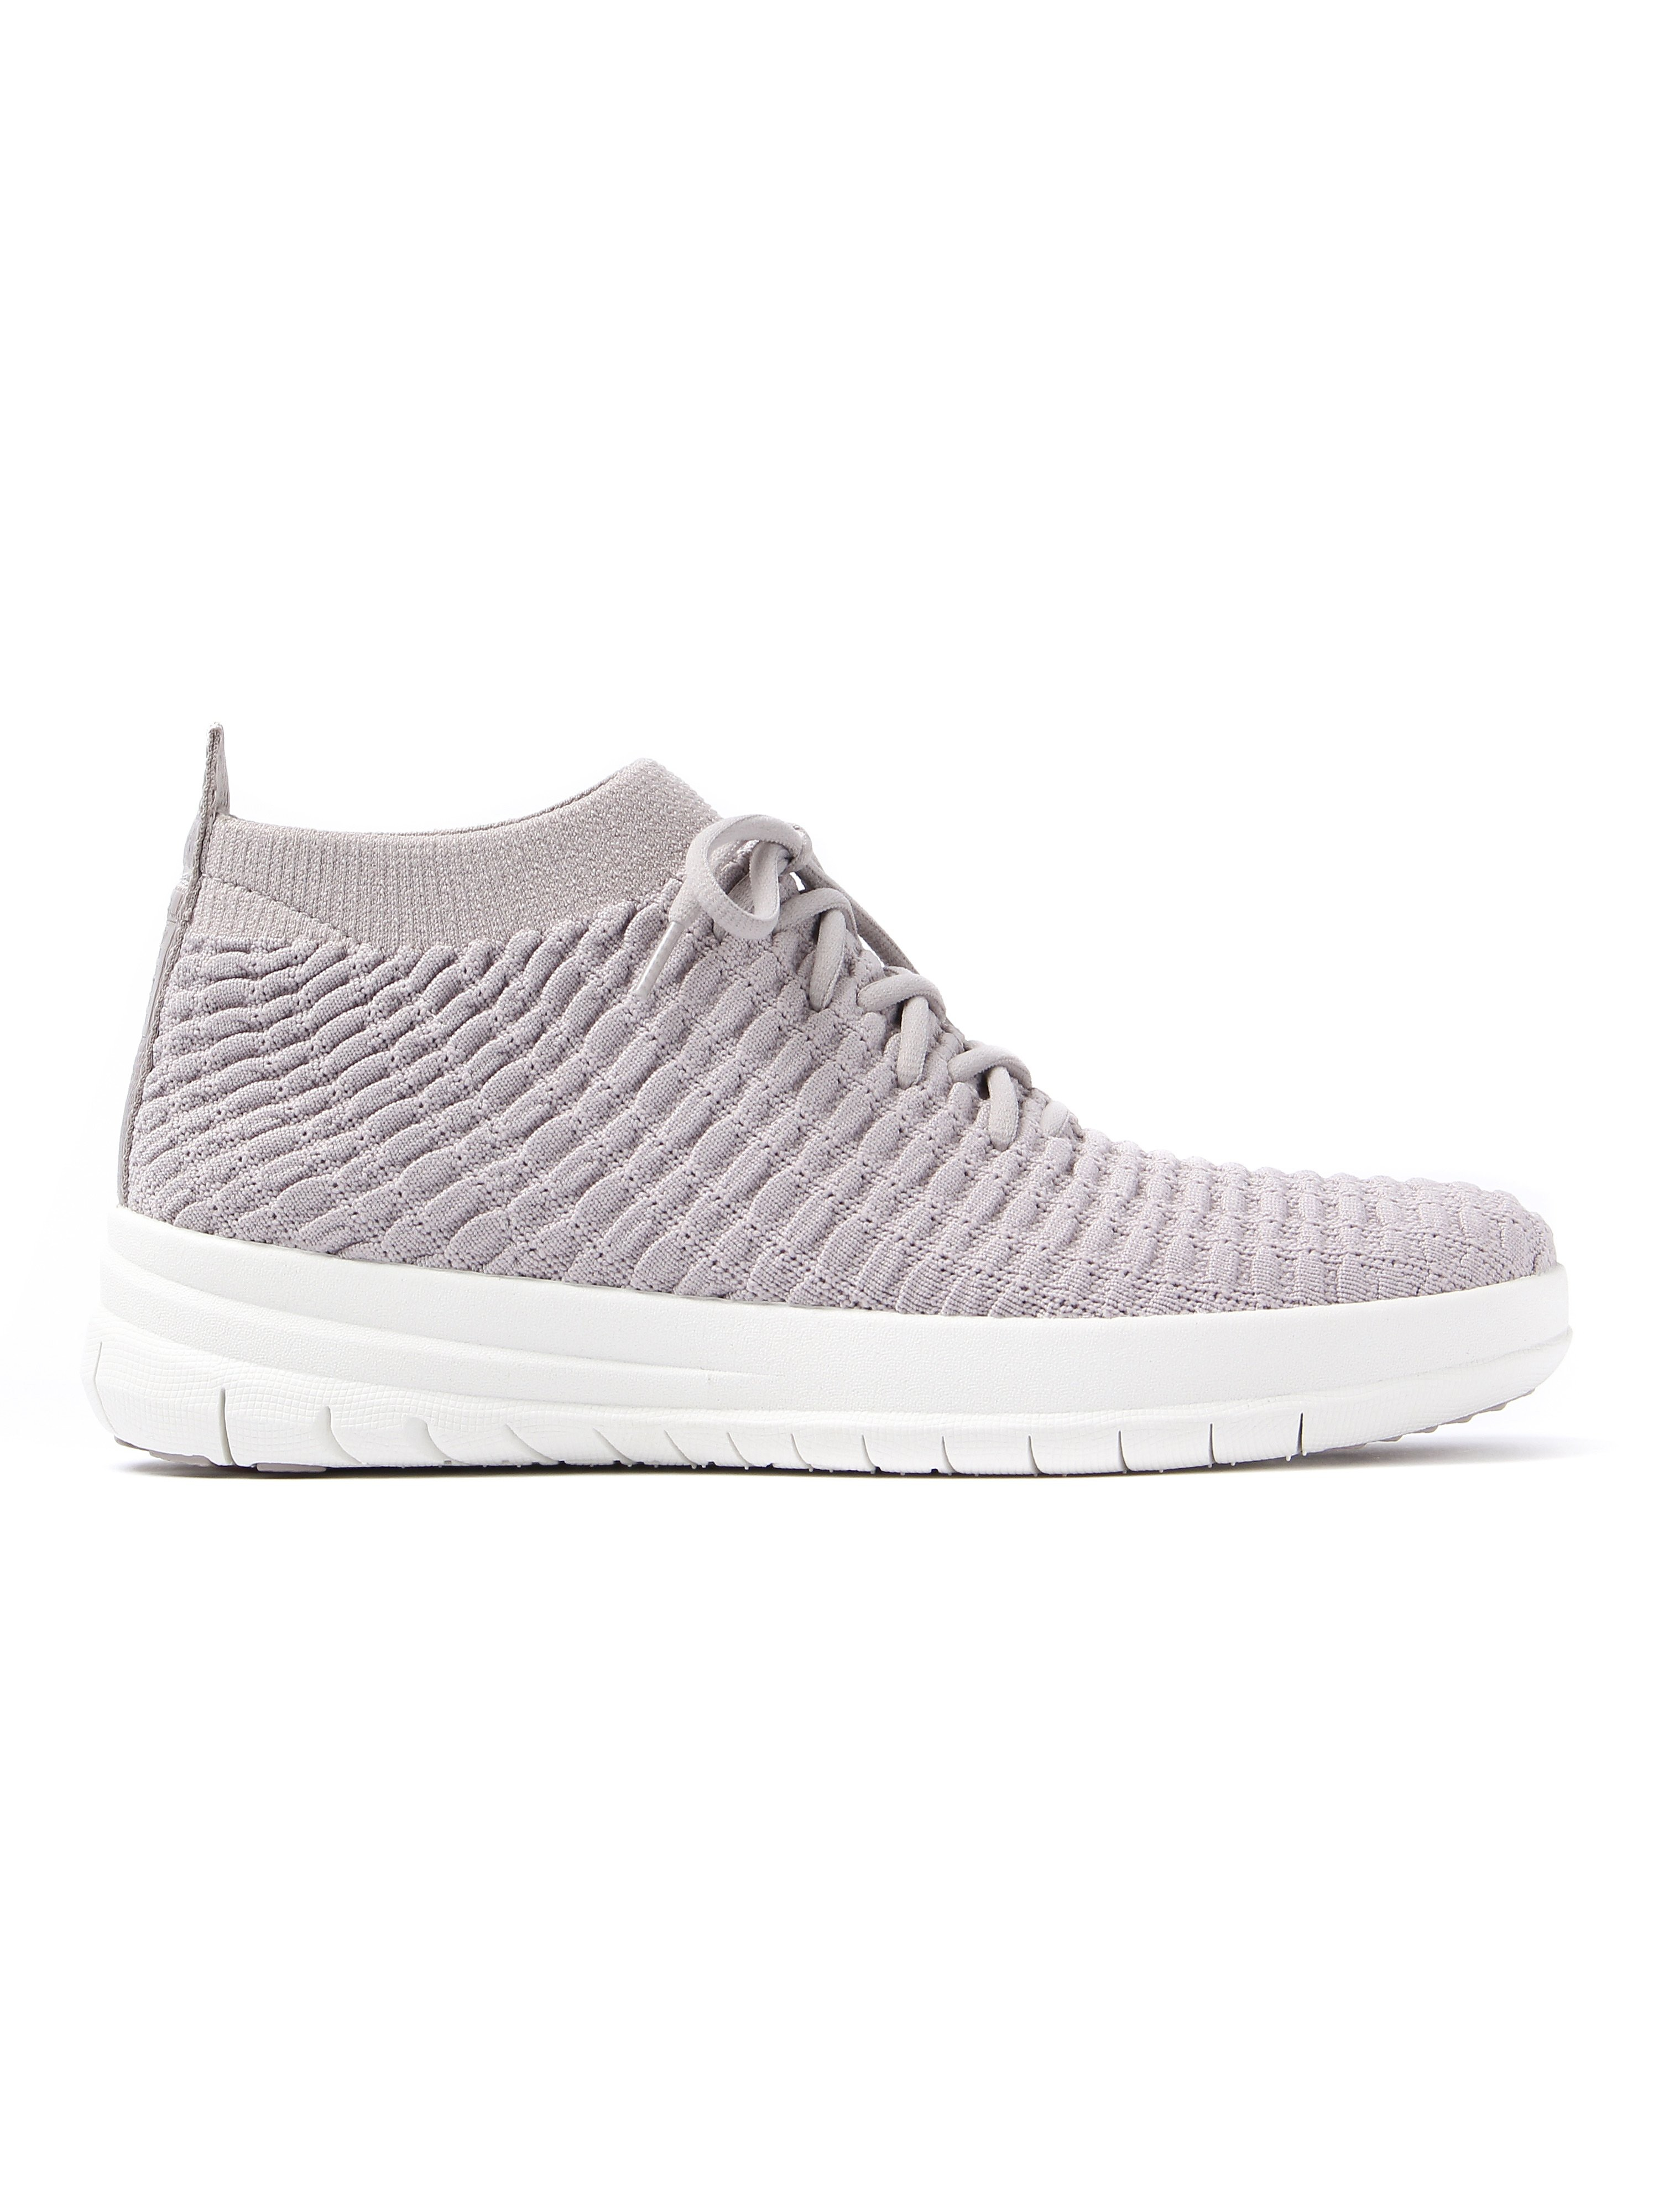 FitFlop Women's Uberknit Waffle High Top Trainers - Stone